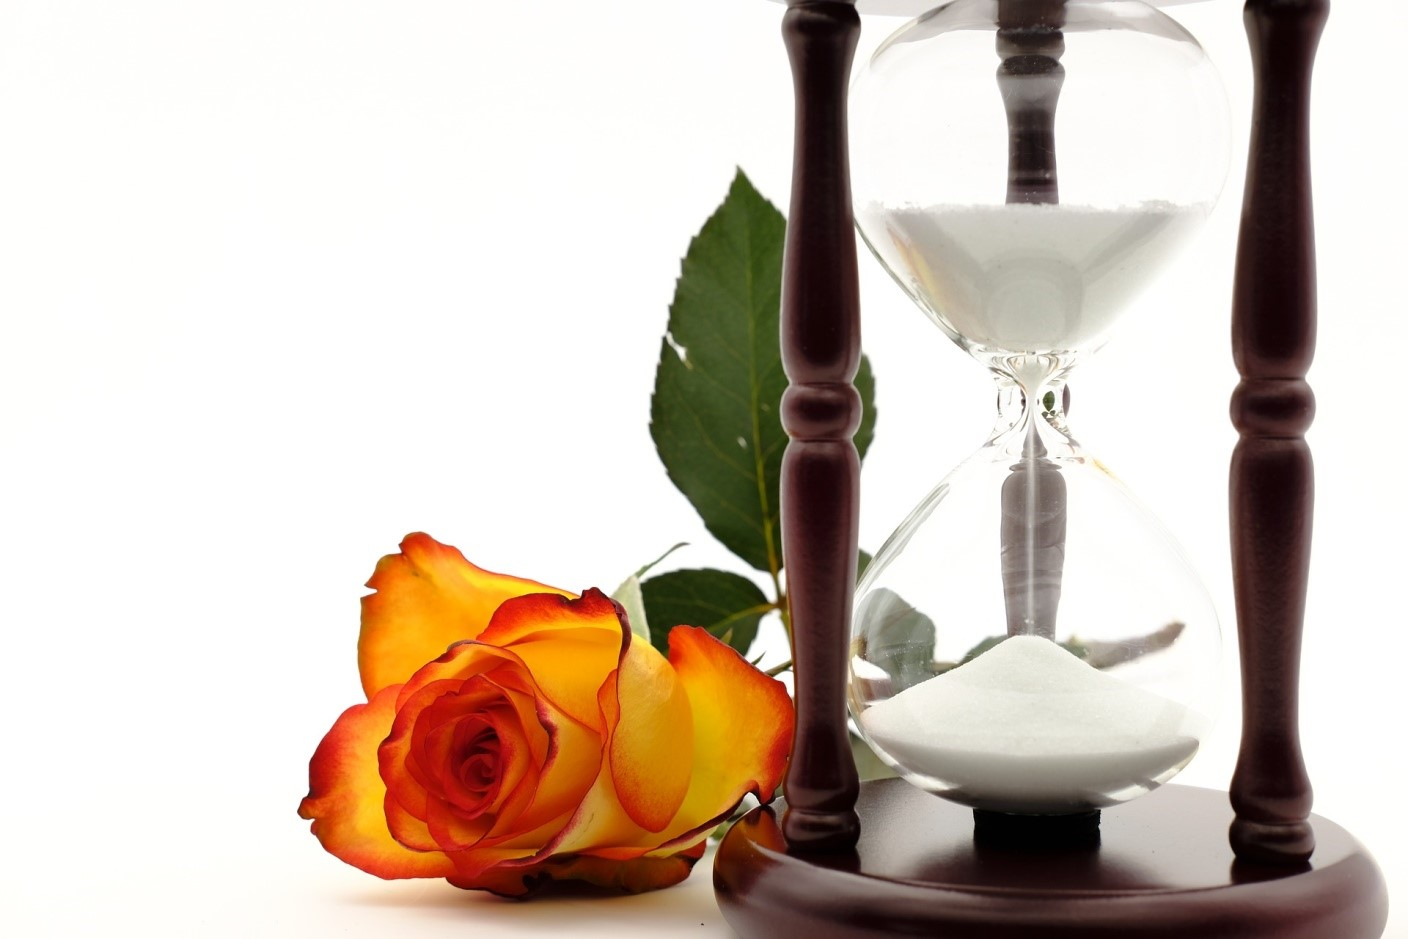 hourglass and rose